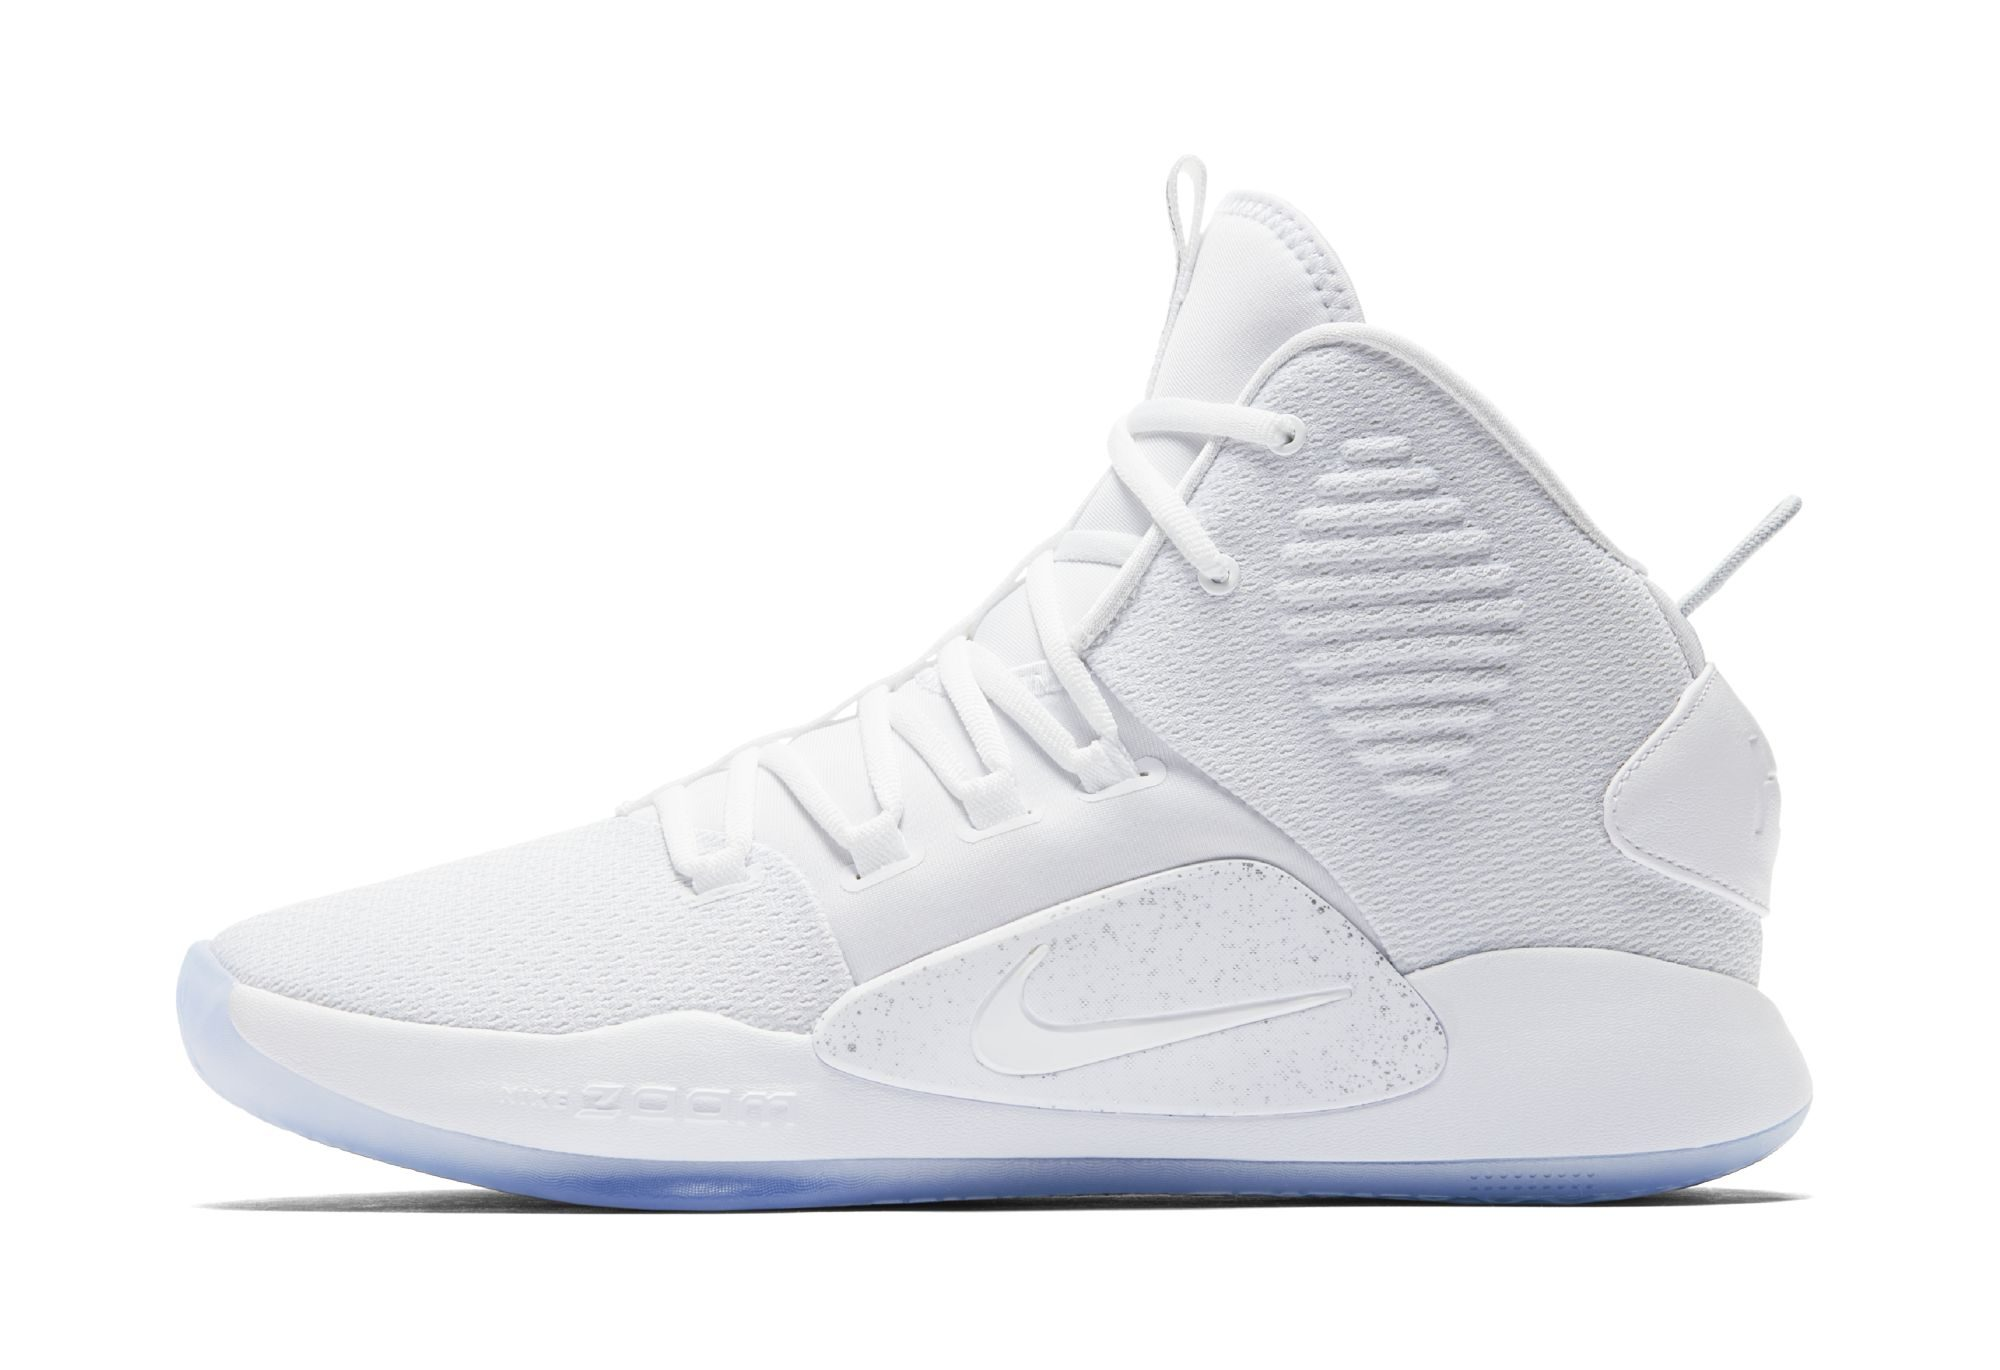 huge selection of 0a5ae 5bbb7 promo code for nike hyperdunk 2013 commercial 65c43 1c94e